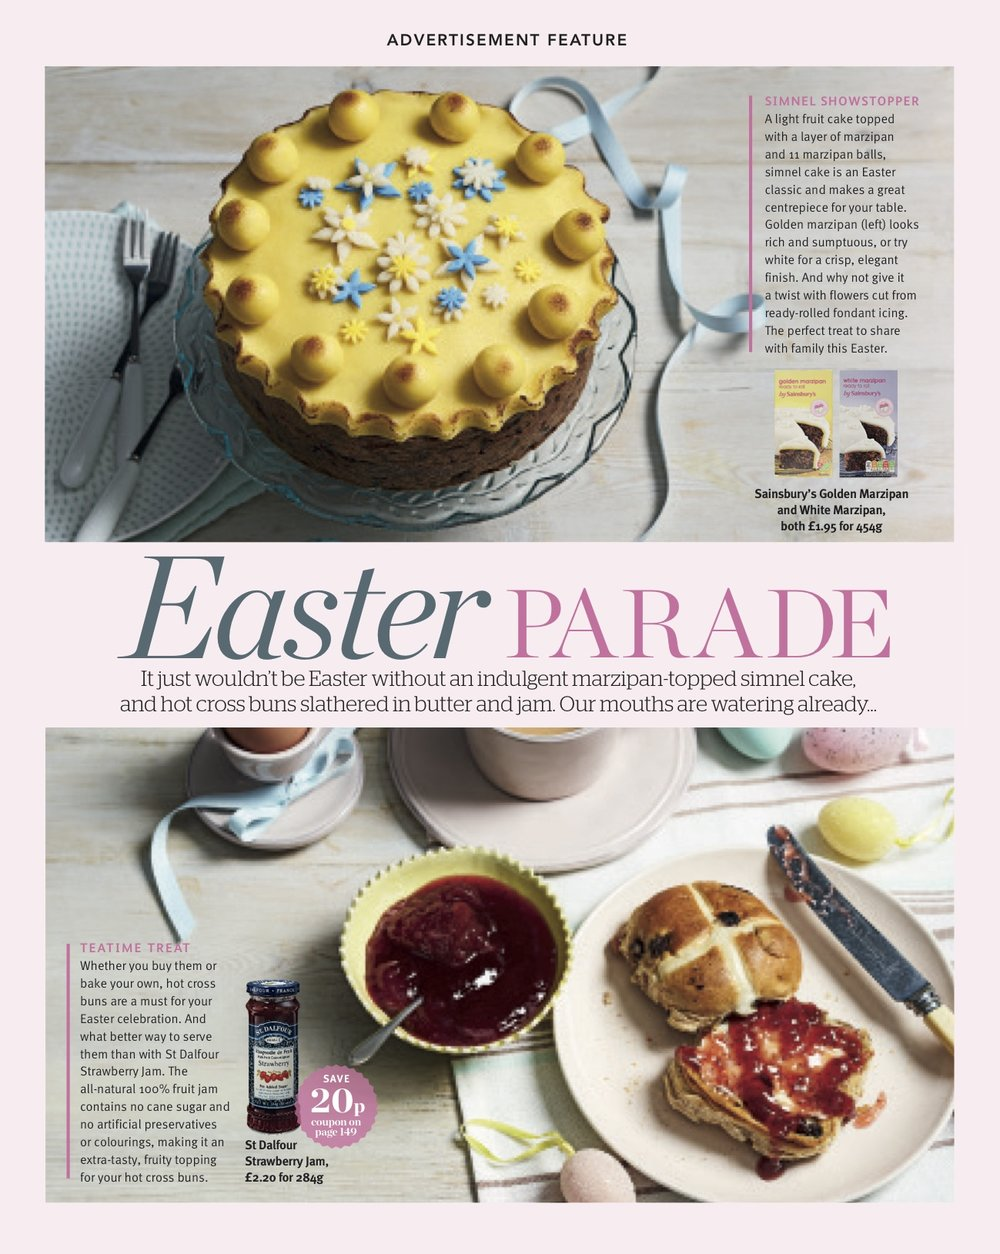 Publication: Sainsbury's magazine, March 2018  Photographer: Vinnie Whiteman  Art Direction and props styling: Sainsbury's advertorial/commercial team